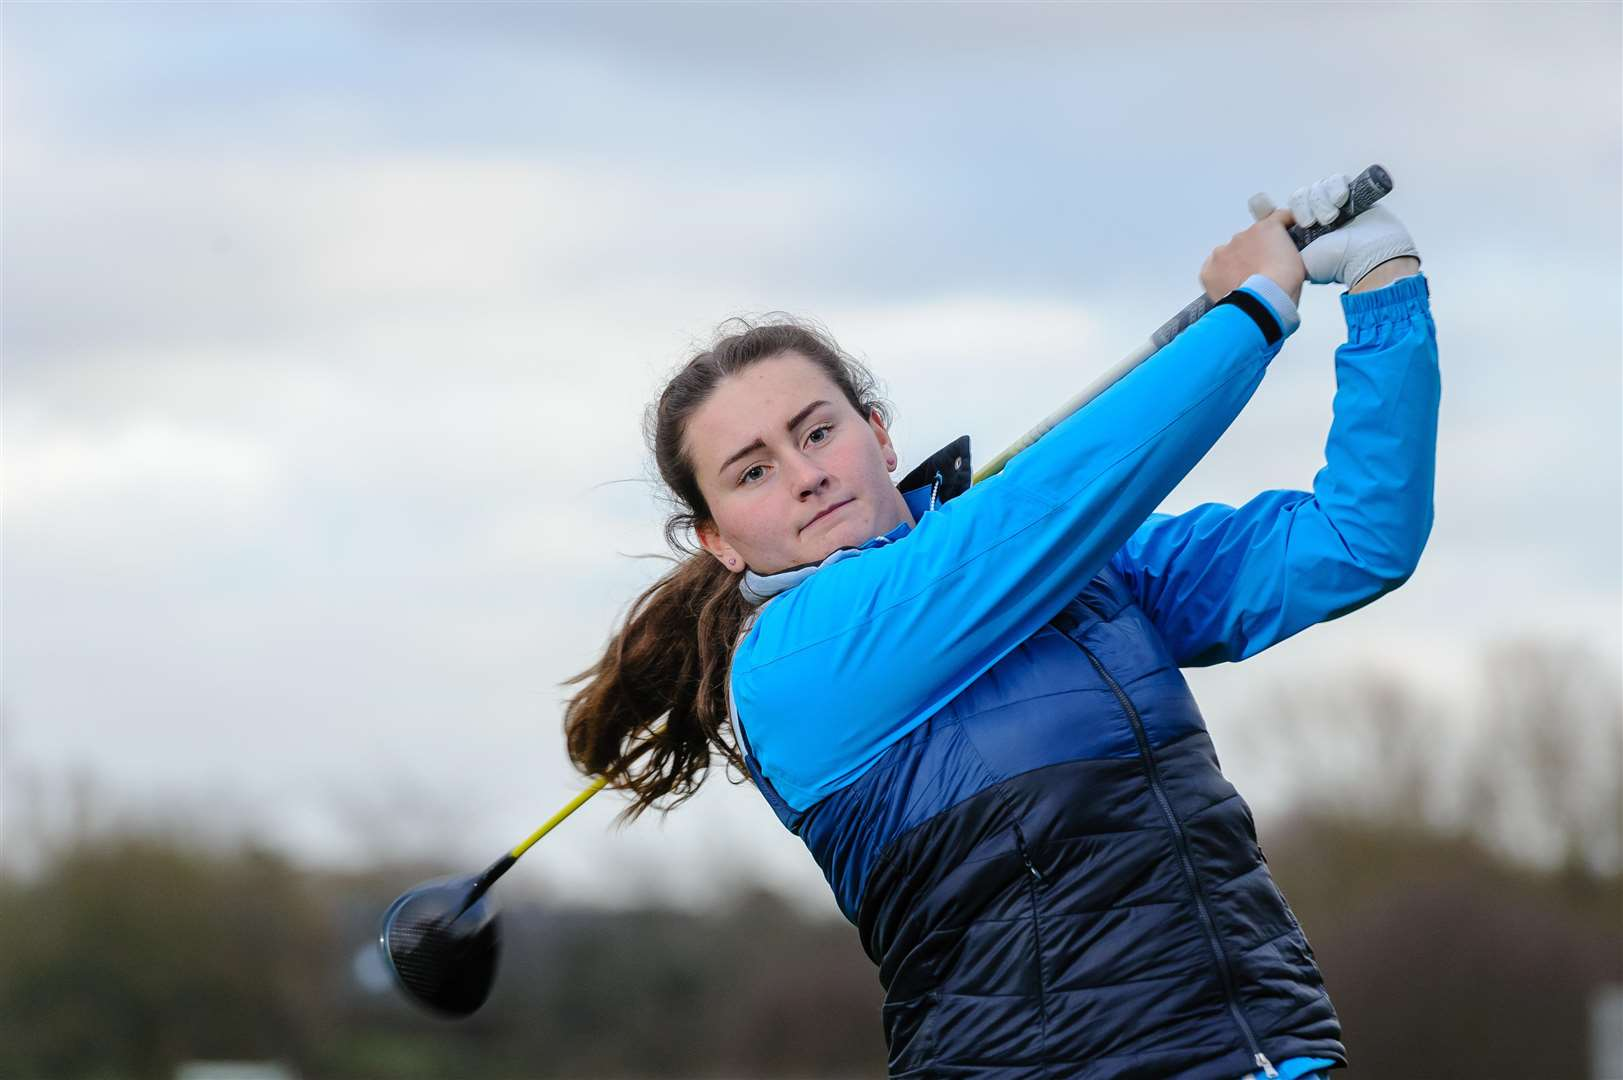 Stoke By Nayland - Golfer Lily May Humphreys, 16 of Great Cornard. ..Picture by Mark Bullimore Photography. (6407439)